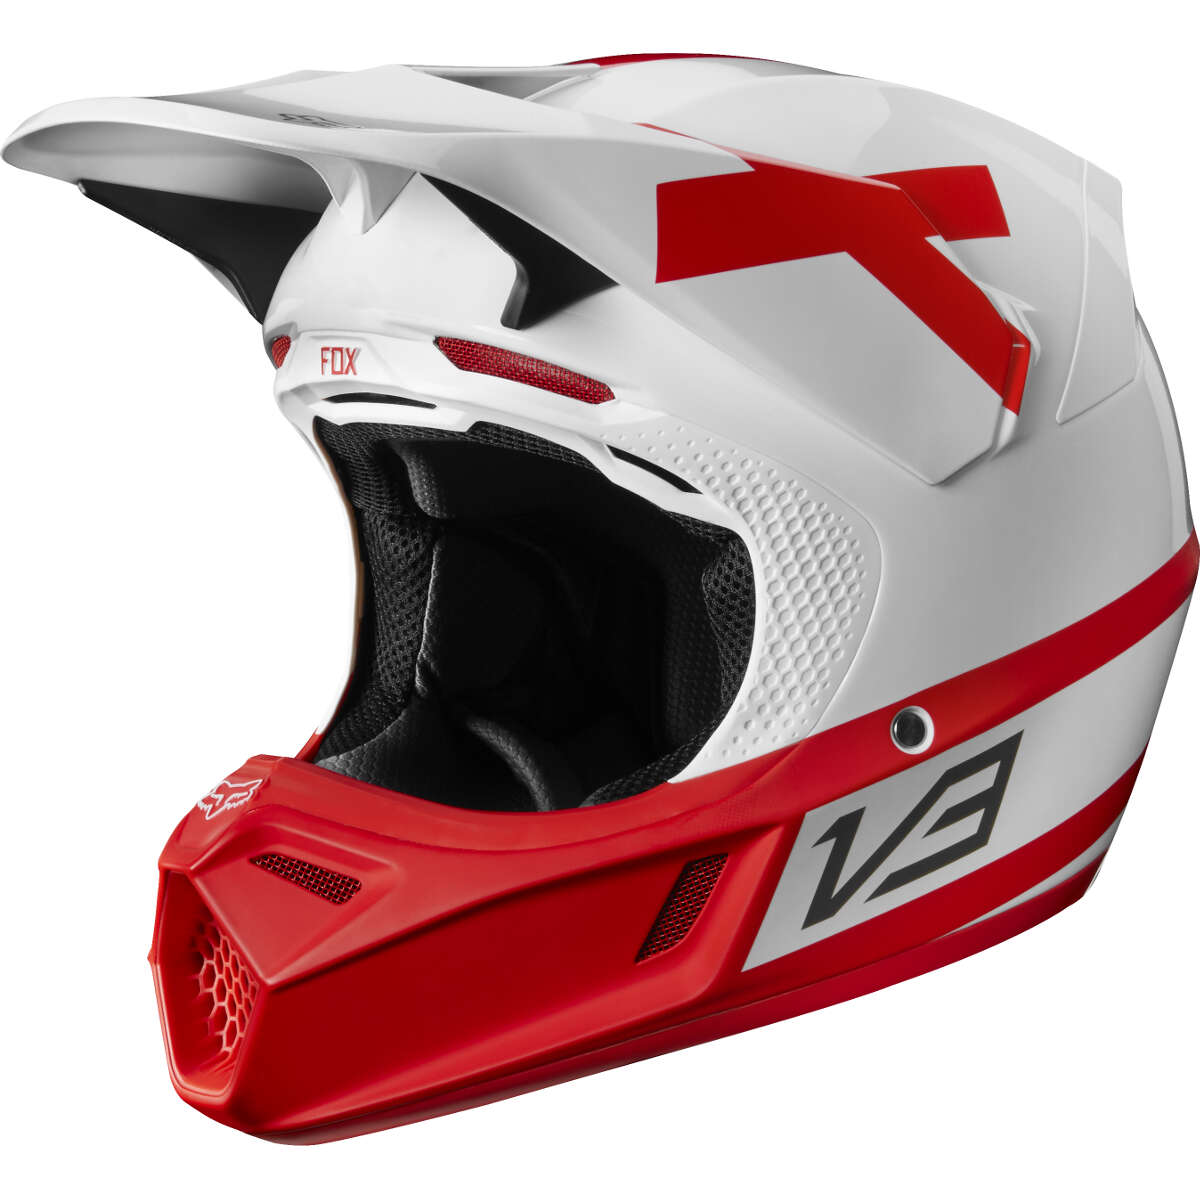 Casque Shoei 2018 >> 2018 Fox Racing Limited Edition V3 Preest Helmet White Red | Sixstar Racing